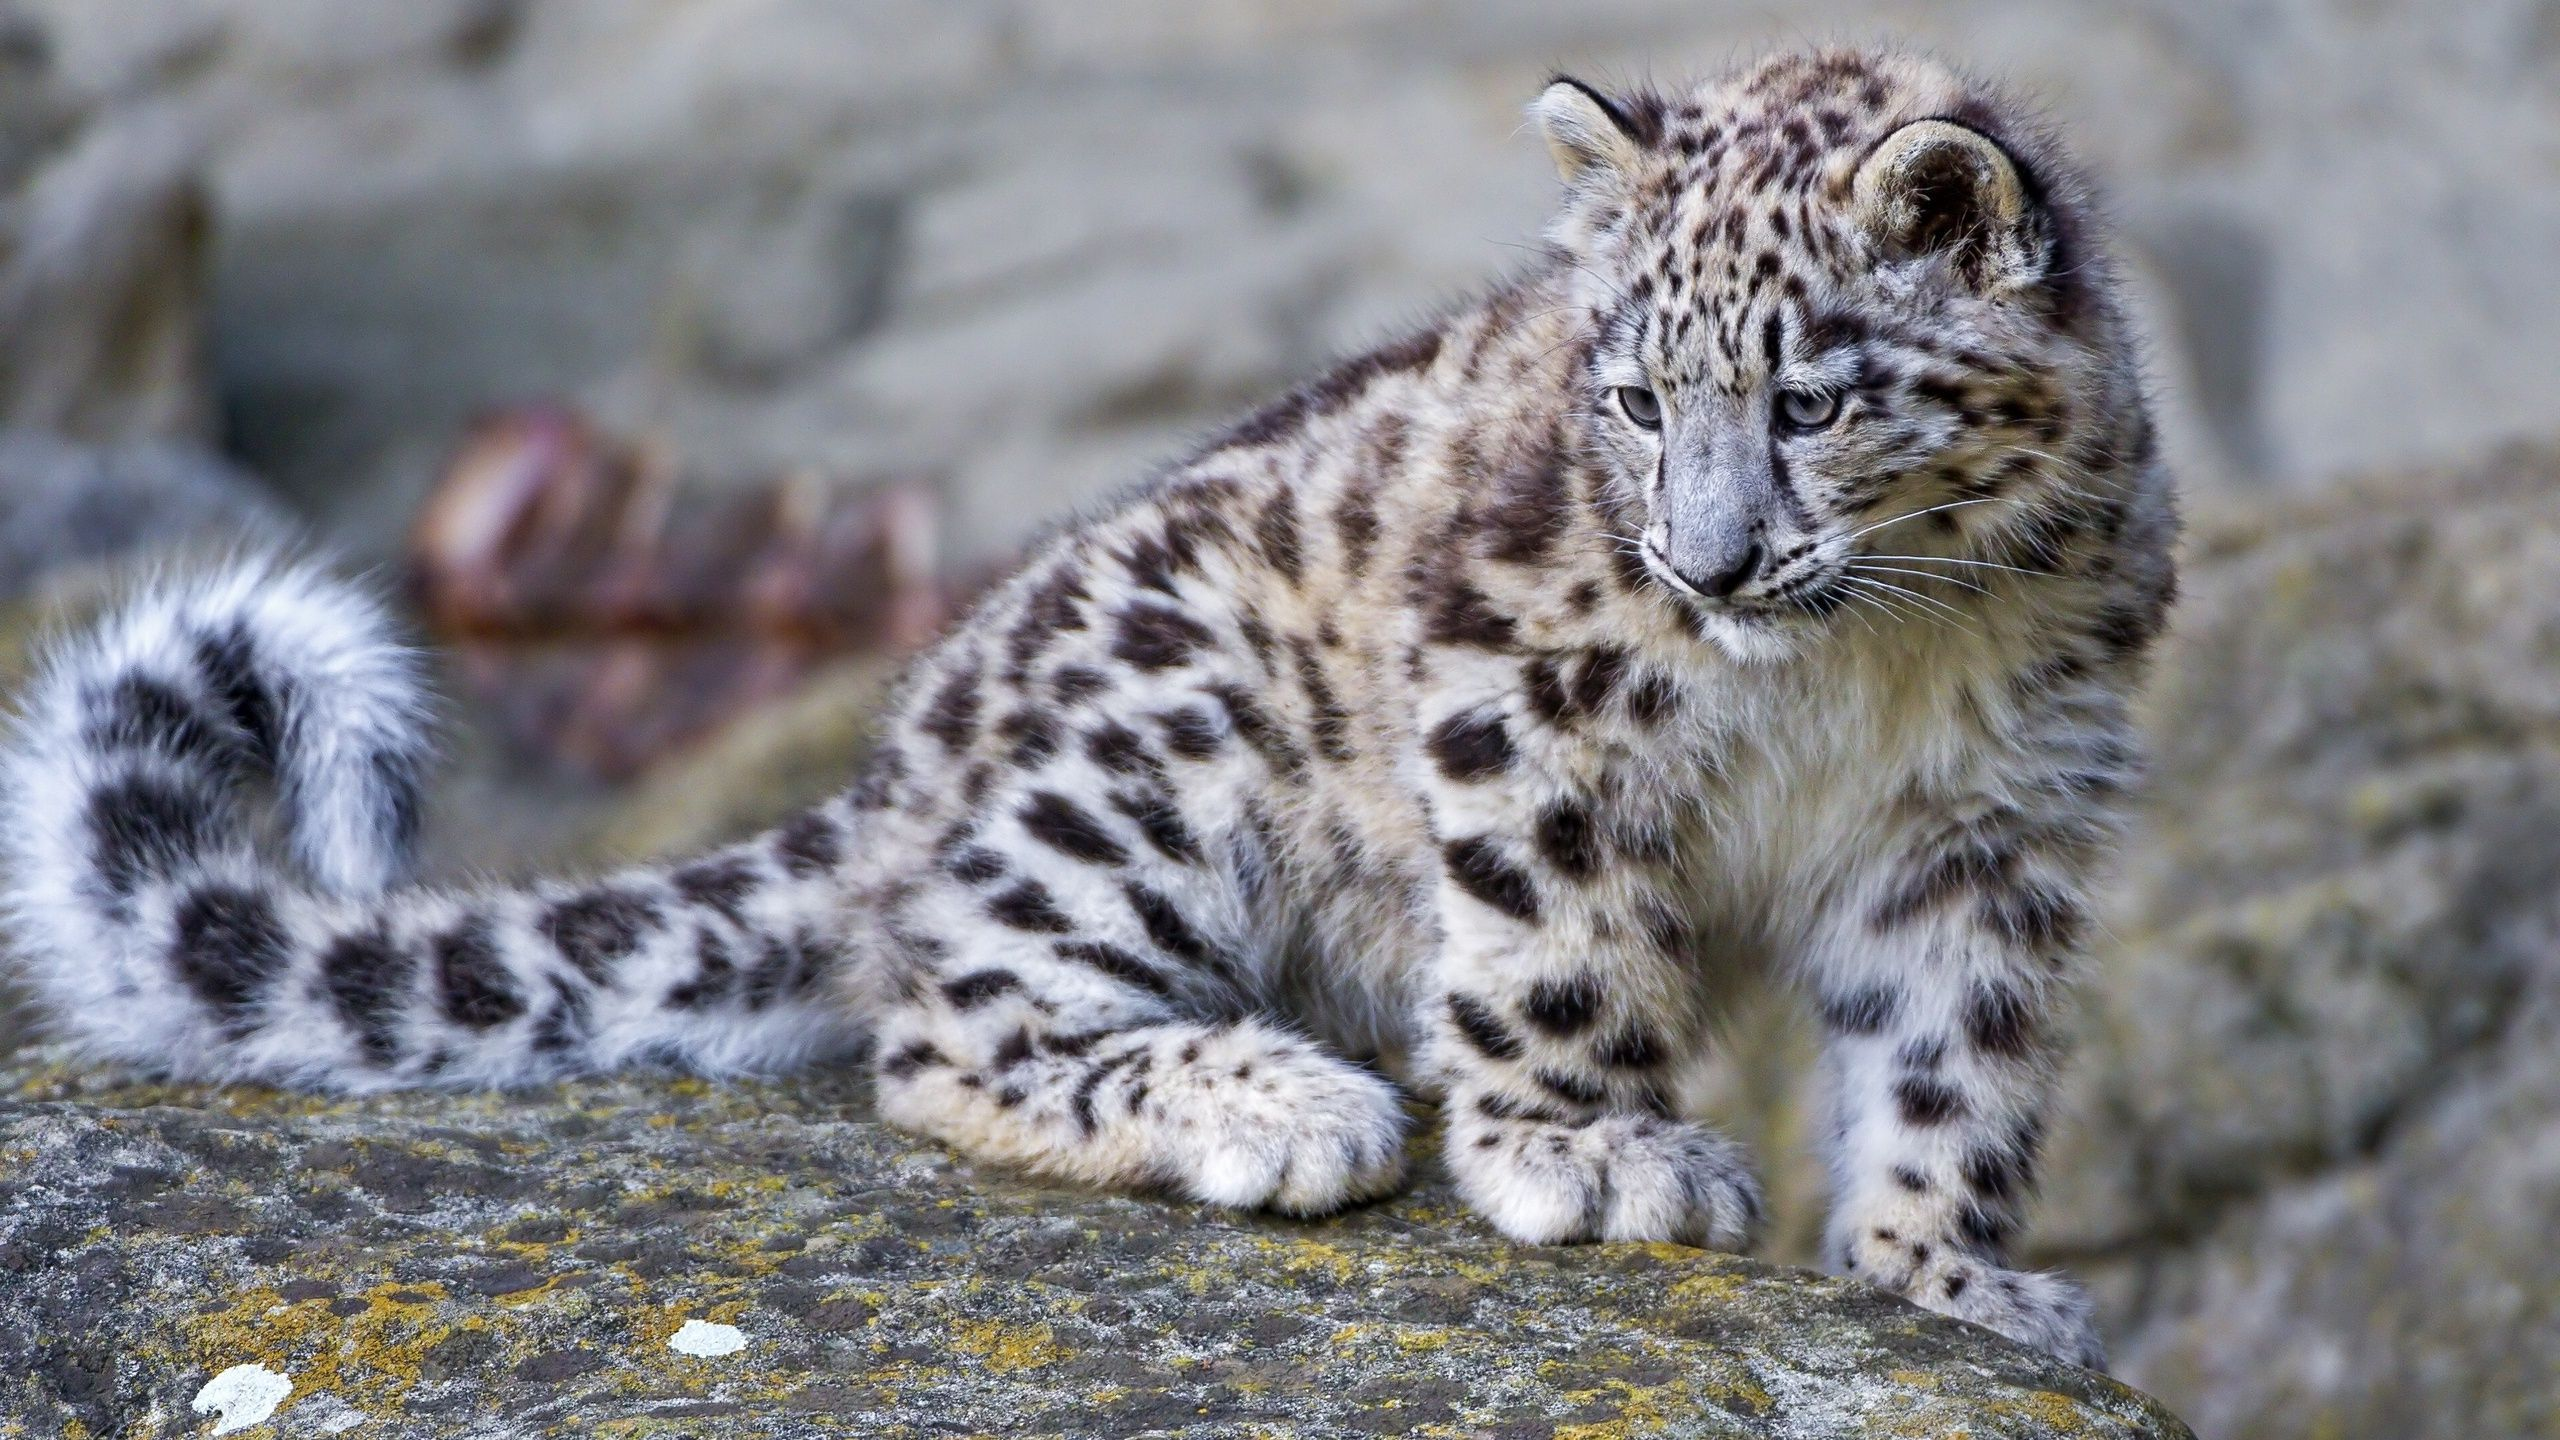 Snow Leopard Wallpapers HD Pictures One HD Wallpaper 2560x1440